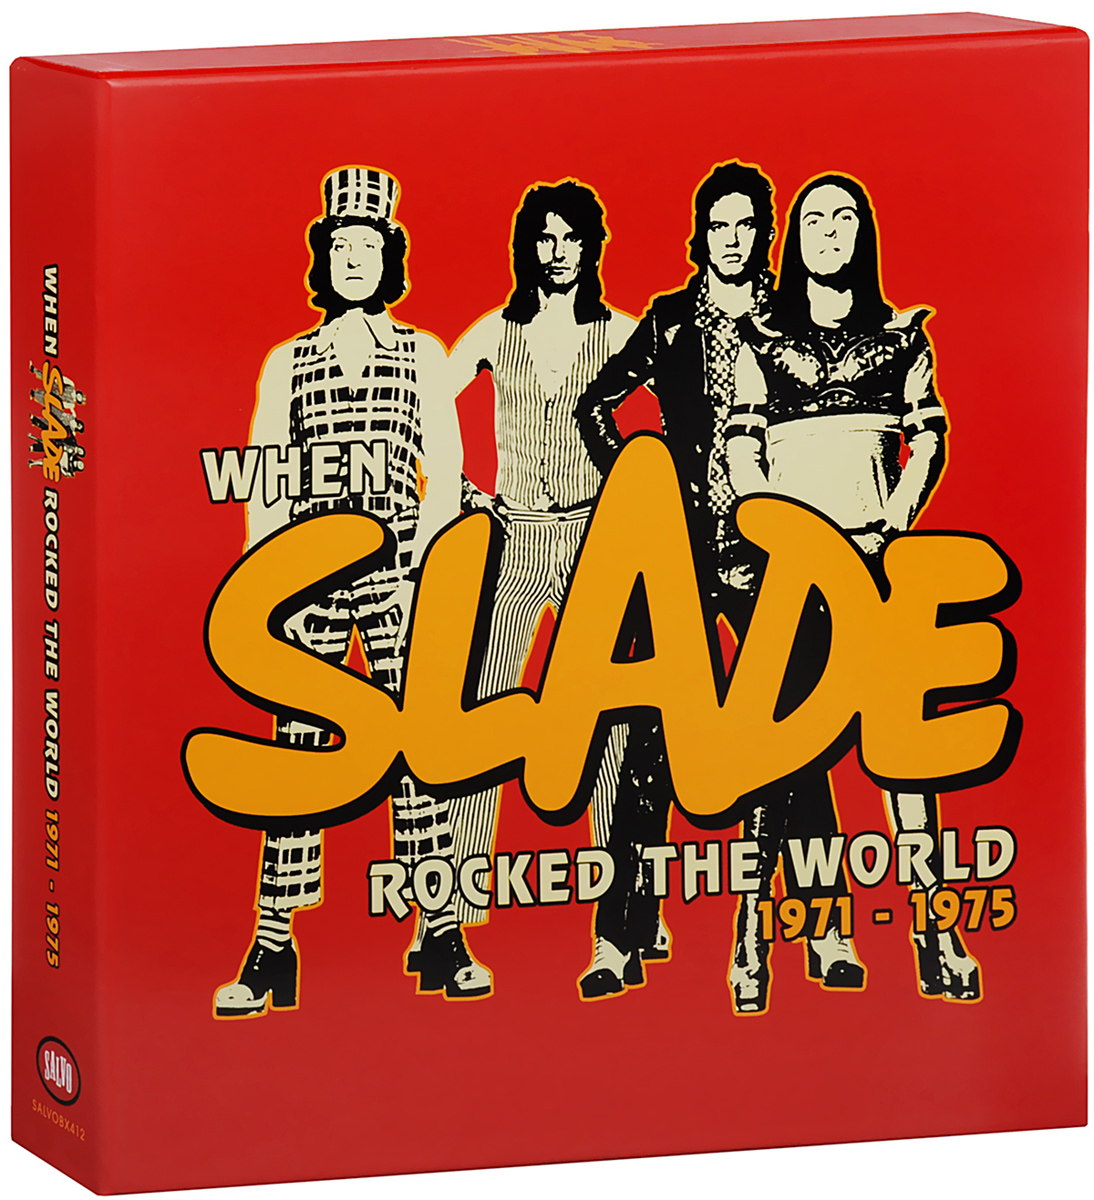 Slade Slade. When Slade Rocked The World 1971-1975 (8 LP + 2 CD) cd диск the doors when you re strange a film about the doors songs from the motion picture 1 cd